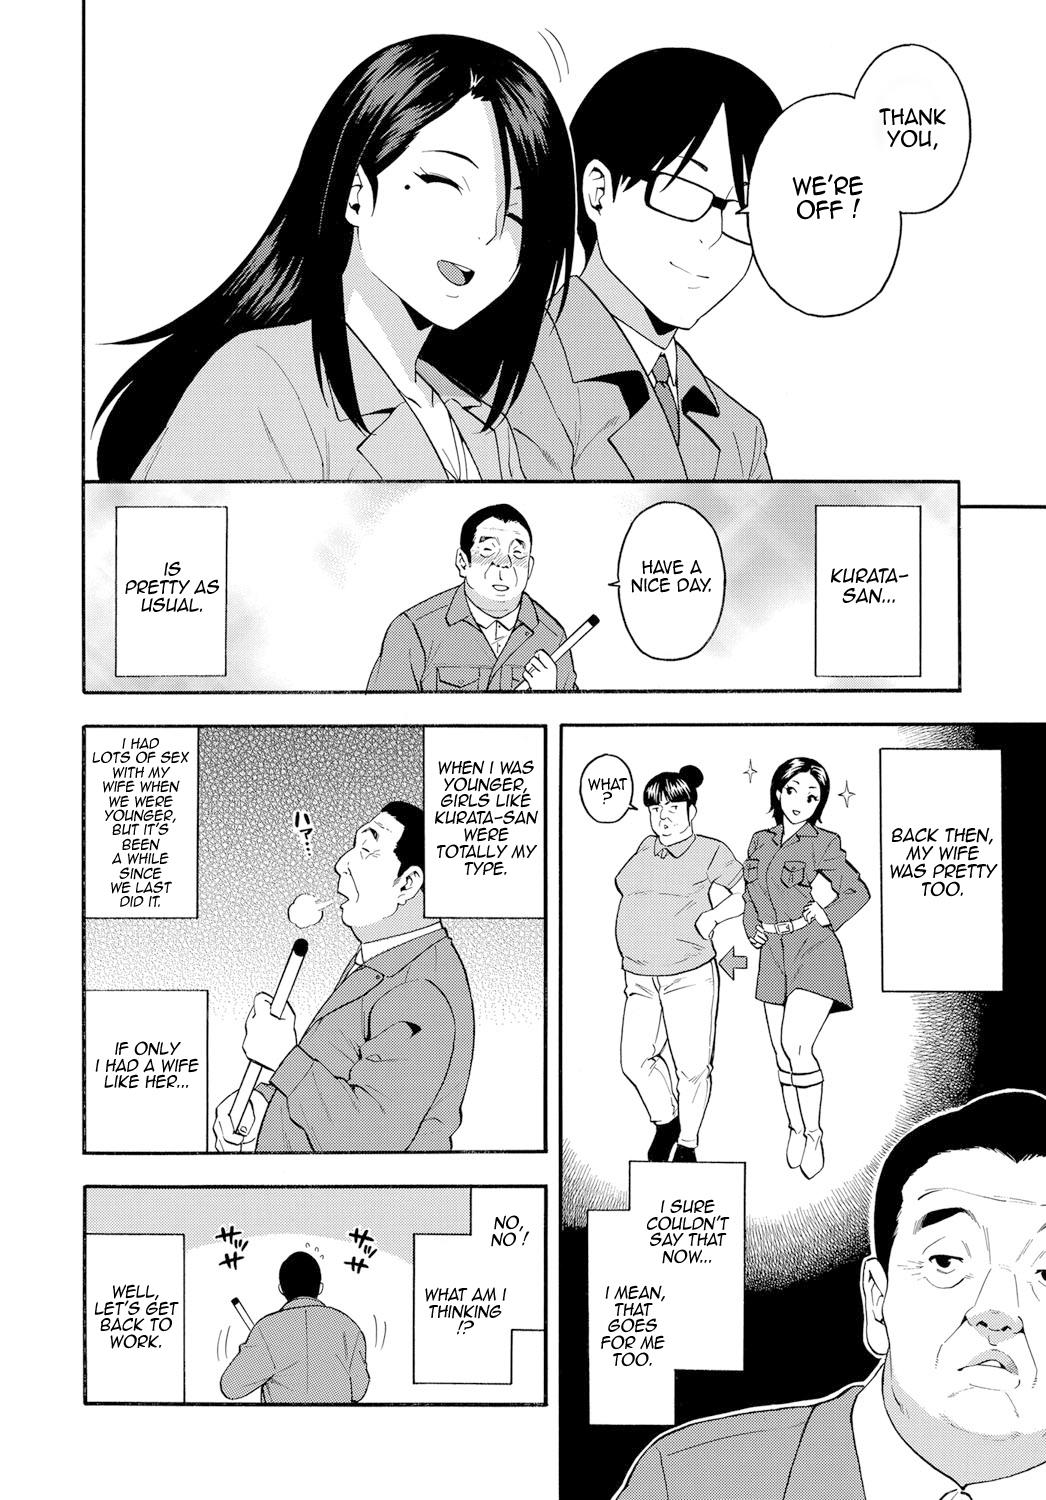 15-nengo no Onna   The Girl From 15 Years Ago 1